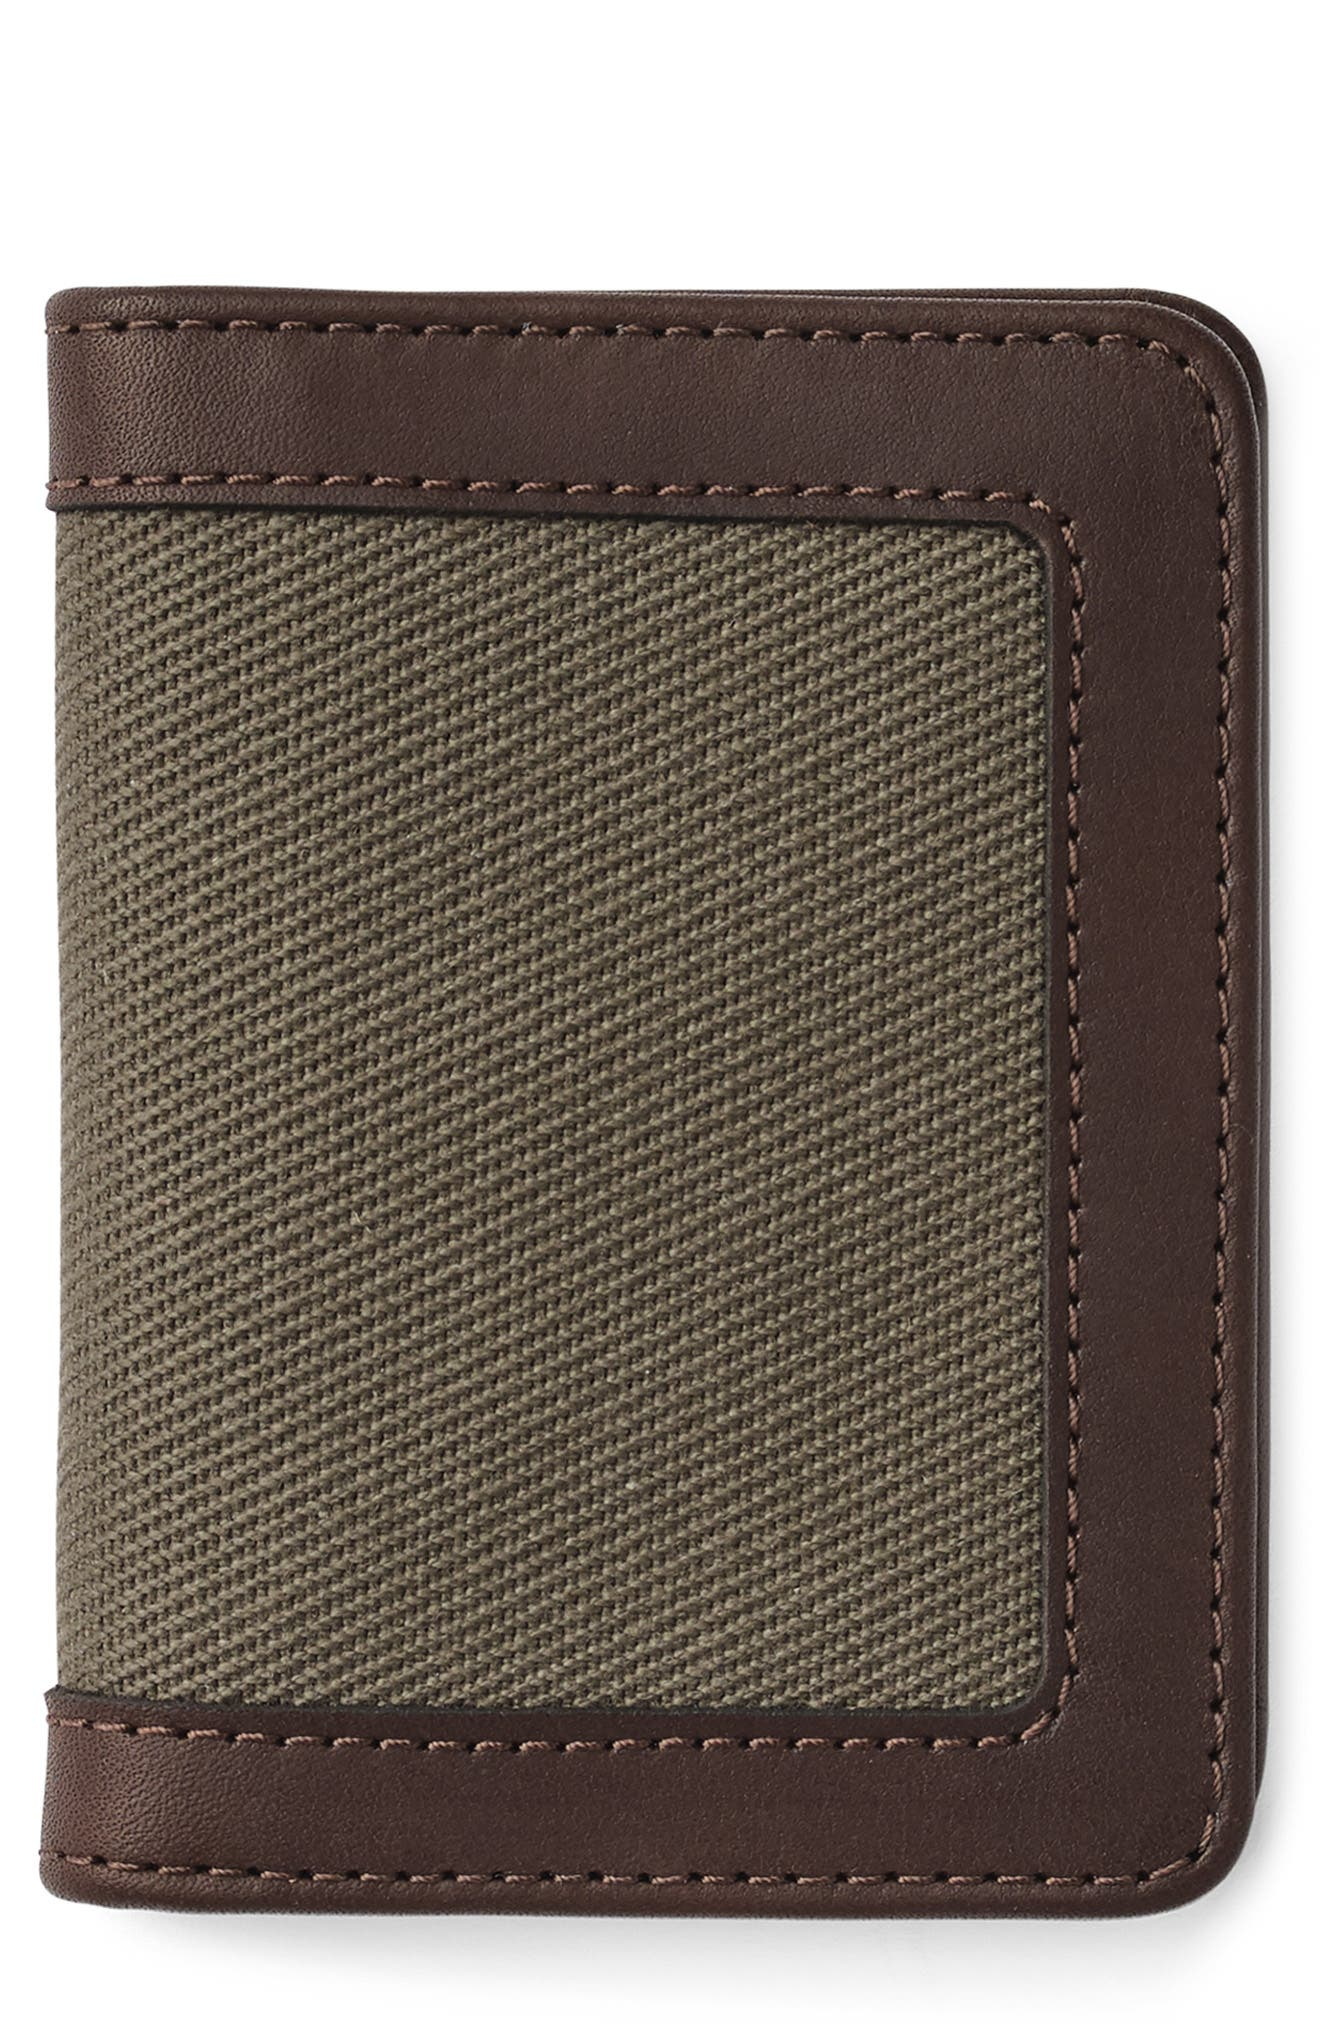 Outfitter Card Case